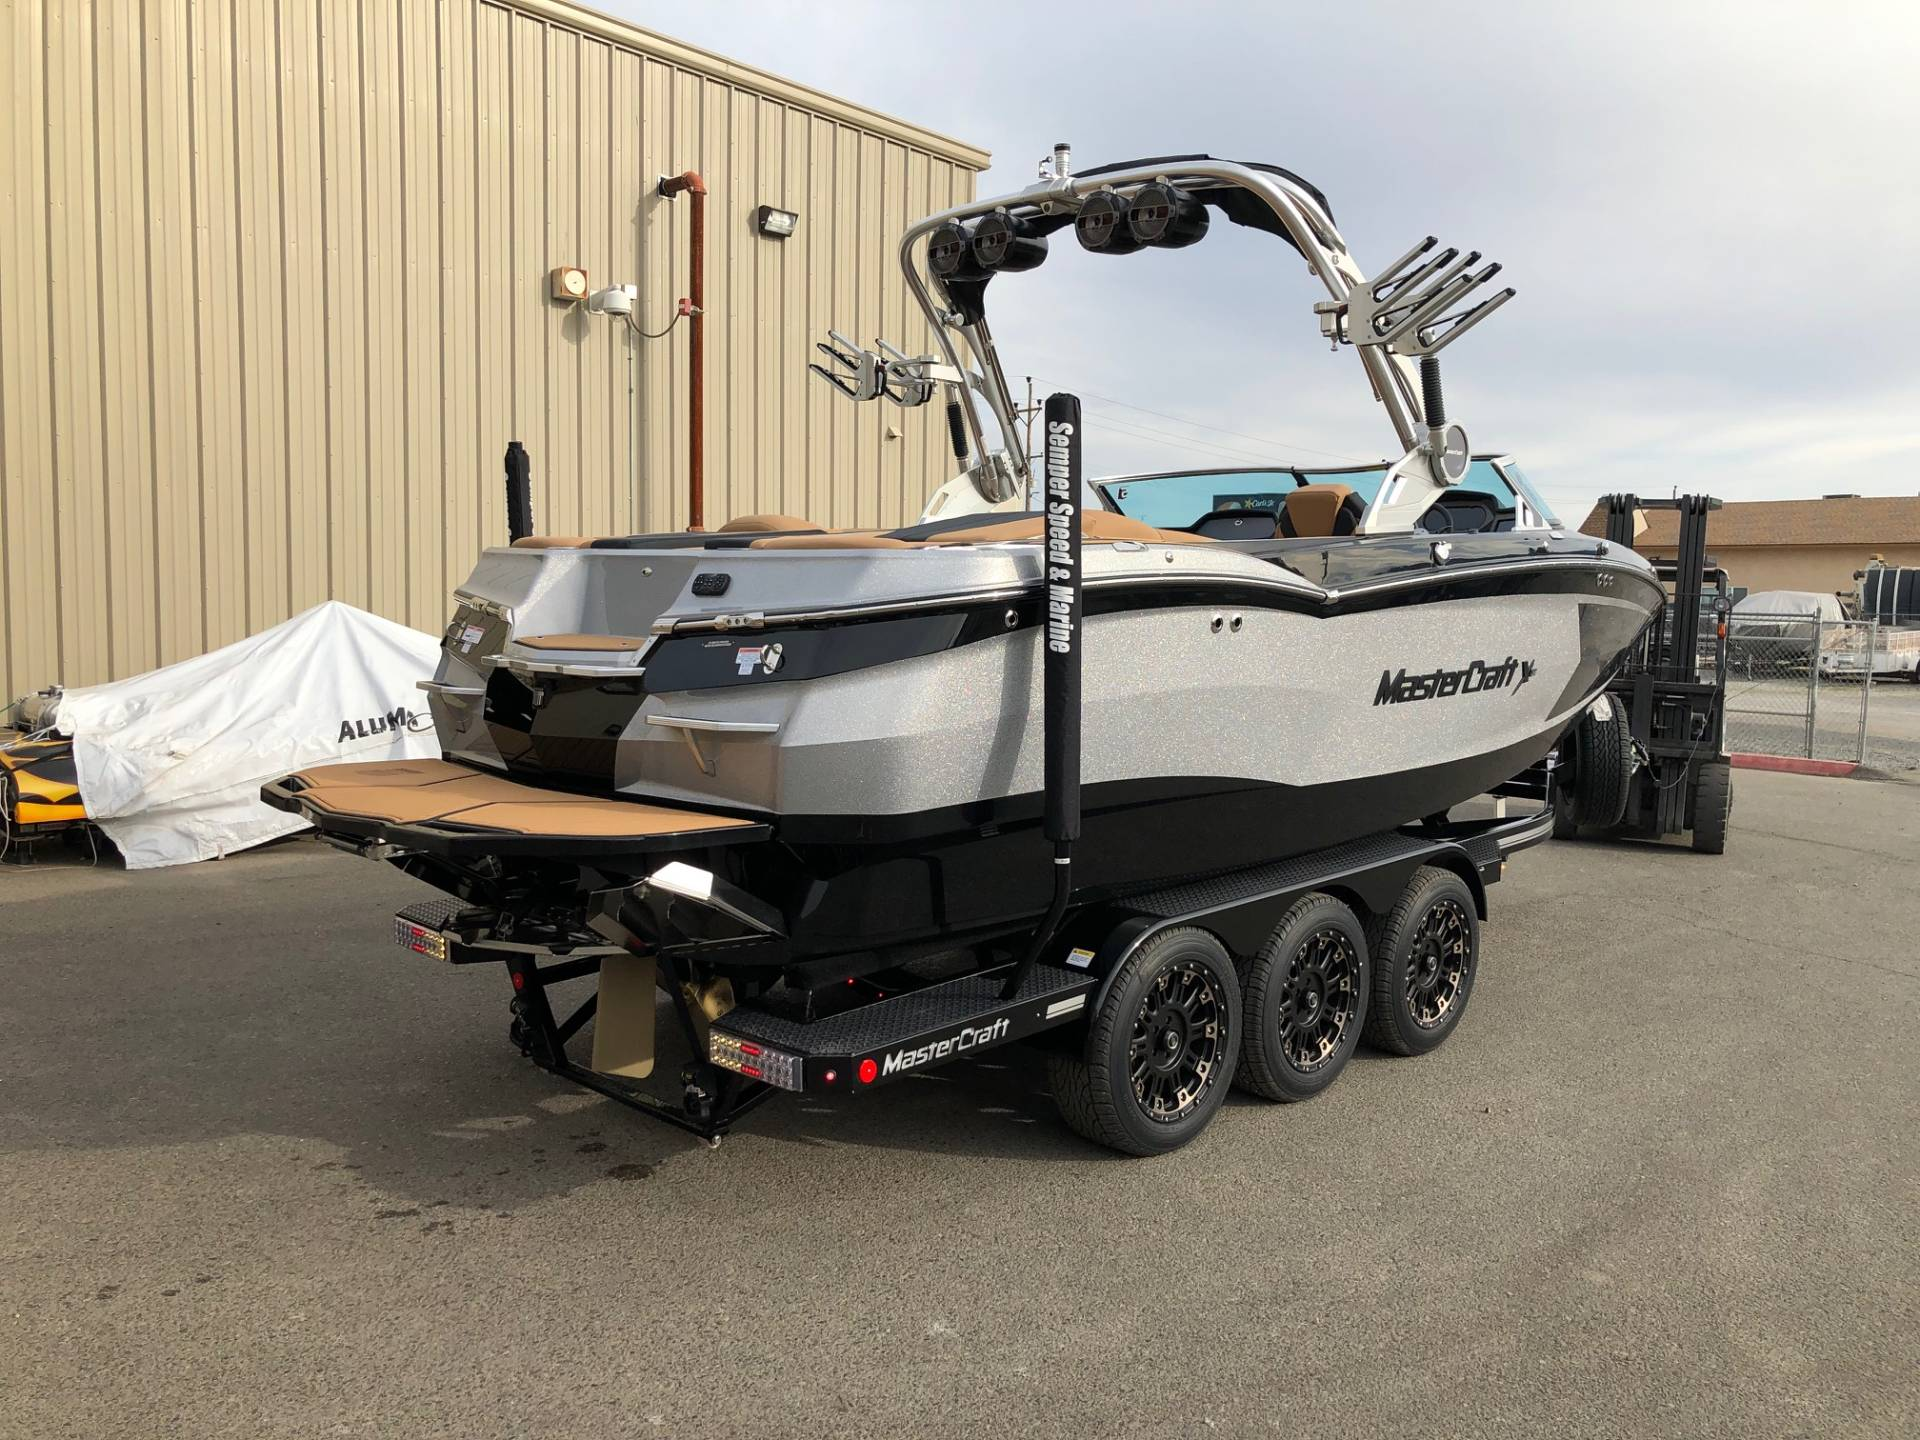 2020 Mastercraft XStar in Madera, California - Photo 5